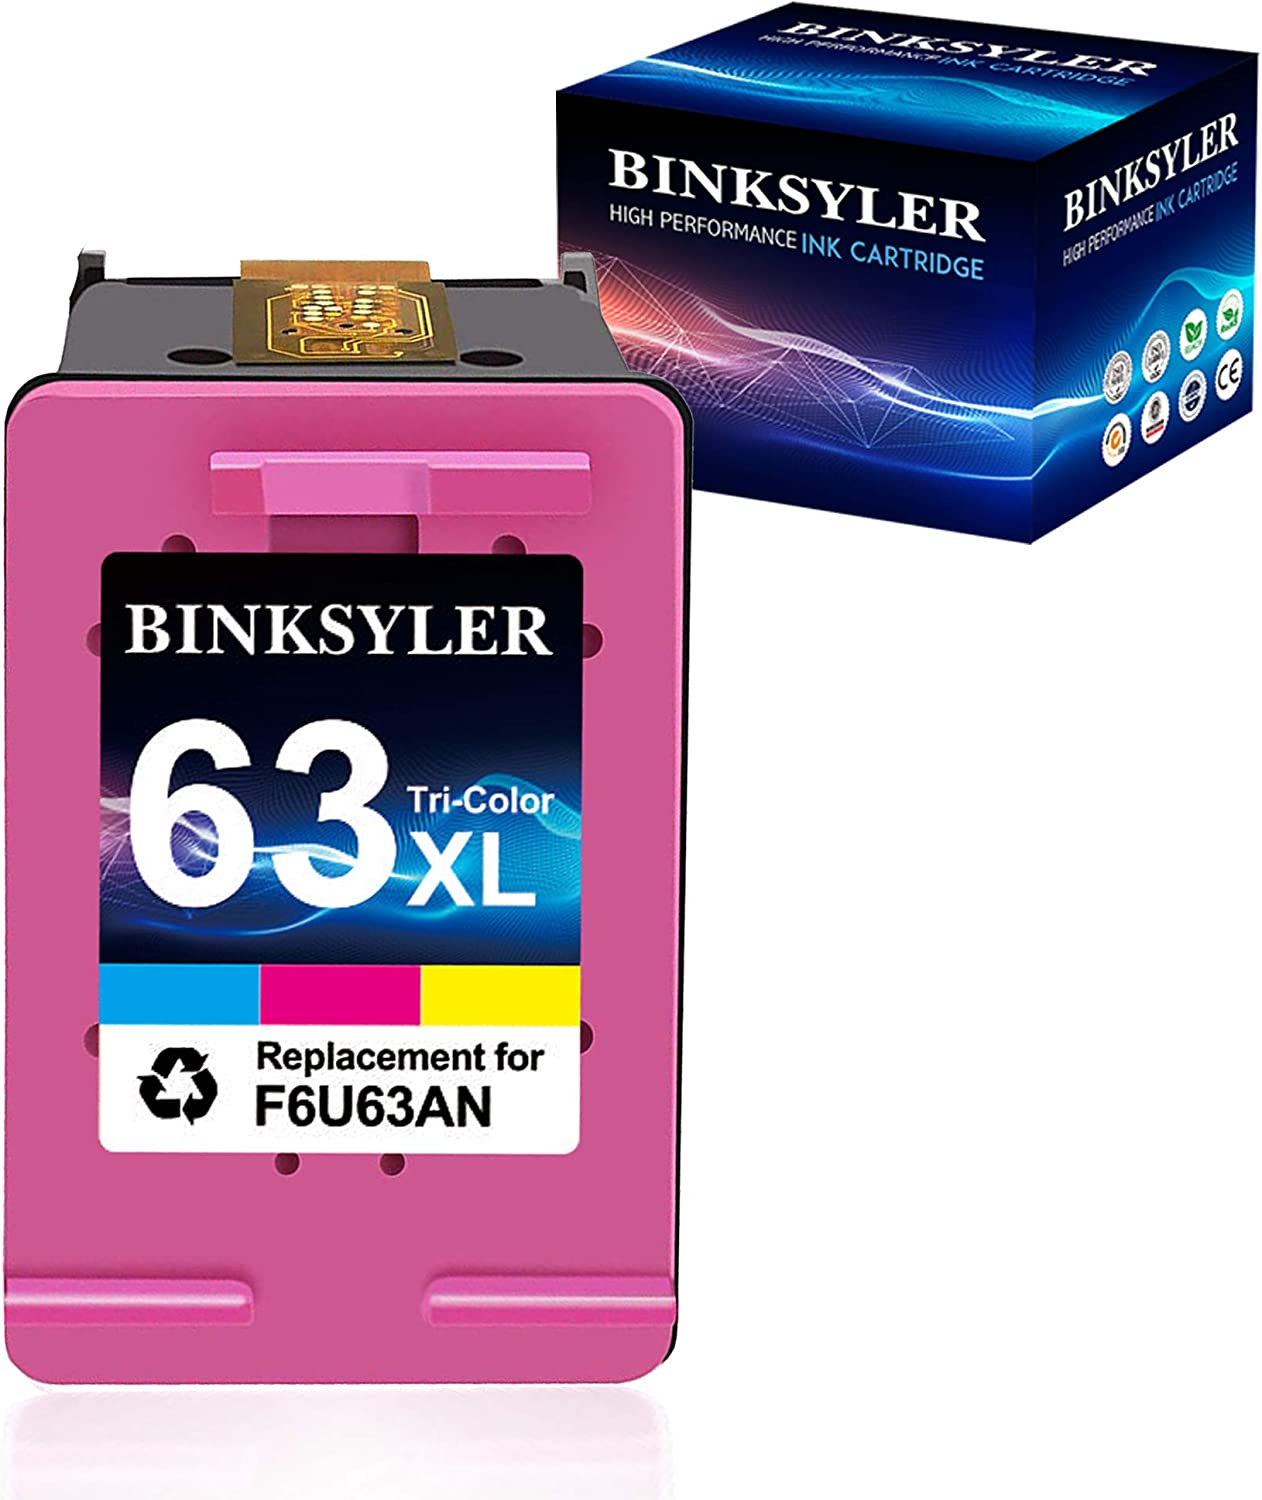 Remanufactured 63 Color Ink Cartridge, Replacement for HP 63 XL 63XL Work with Envy 4520 3634 OfficeJet 3830 5252 4650 5258 4655 5255 DeskJet 3636 3630 1112 3637 Printer(1 Tri-Color) by BINKSYLER